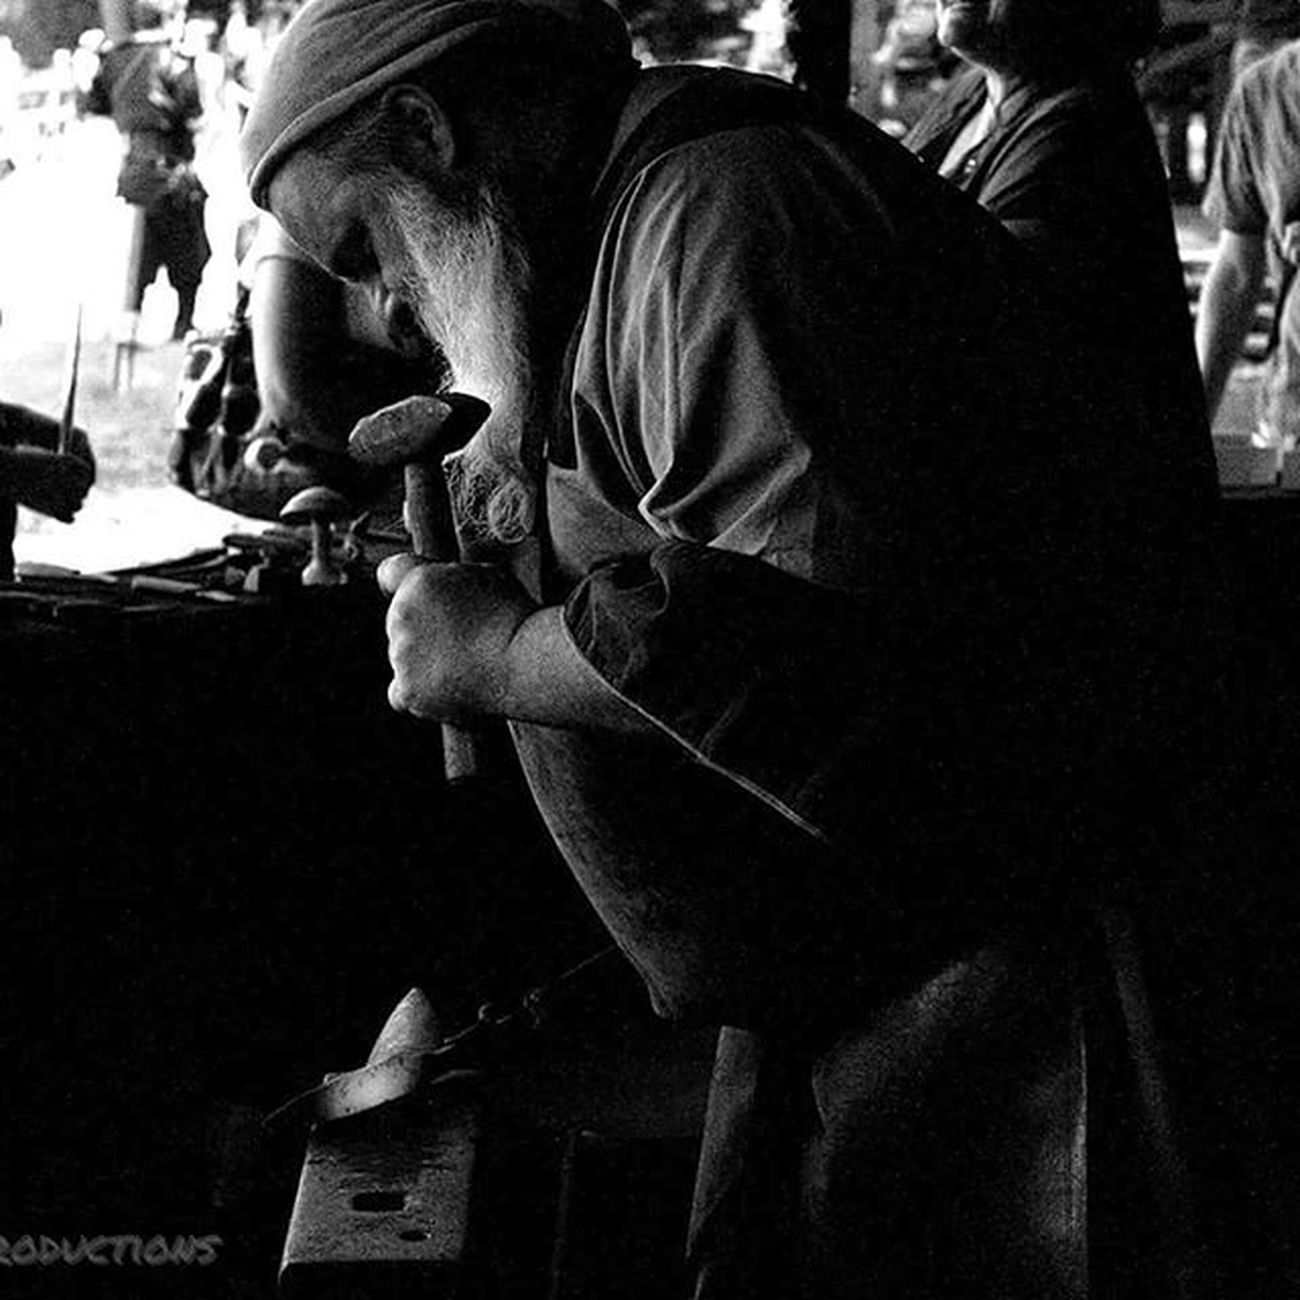 Black smith at the ren faire. Kelleymediaproductions Art Renfaire Renaissancefaire Nyrenaissancefaire Blacksmith  Blacksmithing Blackandwhite Blackandwhitephotography Photography Photographersofinstagram Photographer Canon Canon_official Canonphotography Canon7d  Stayrad